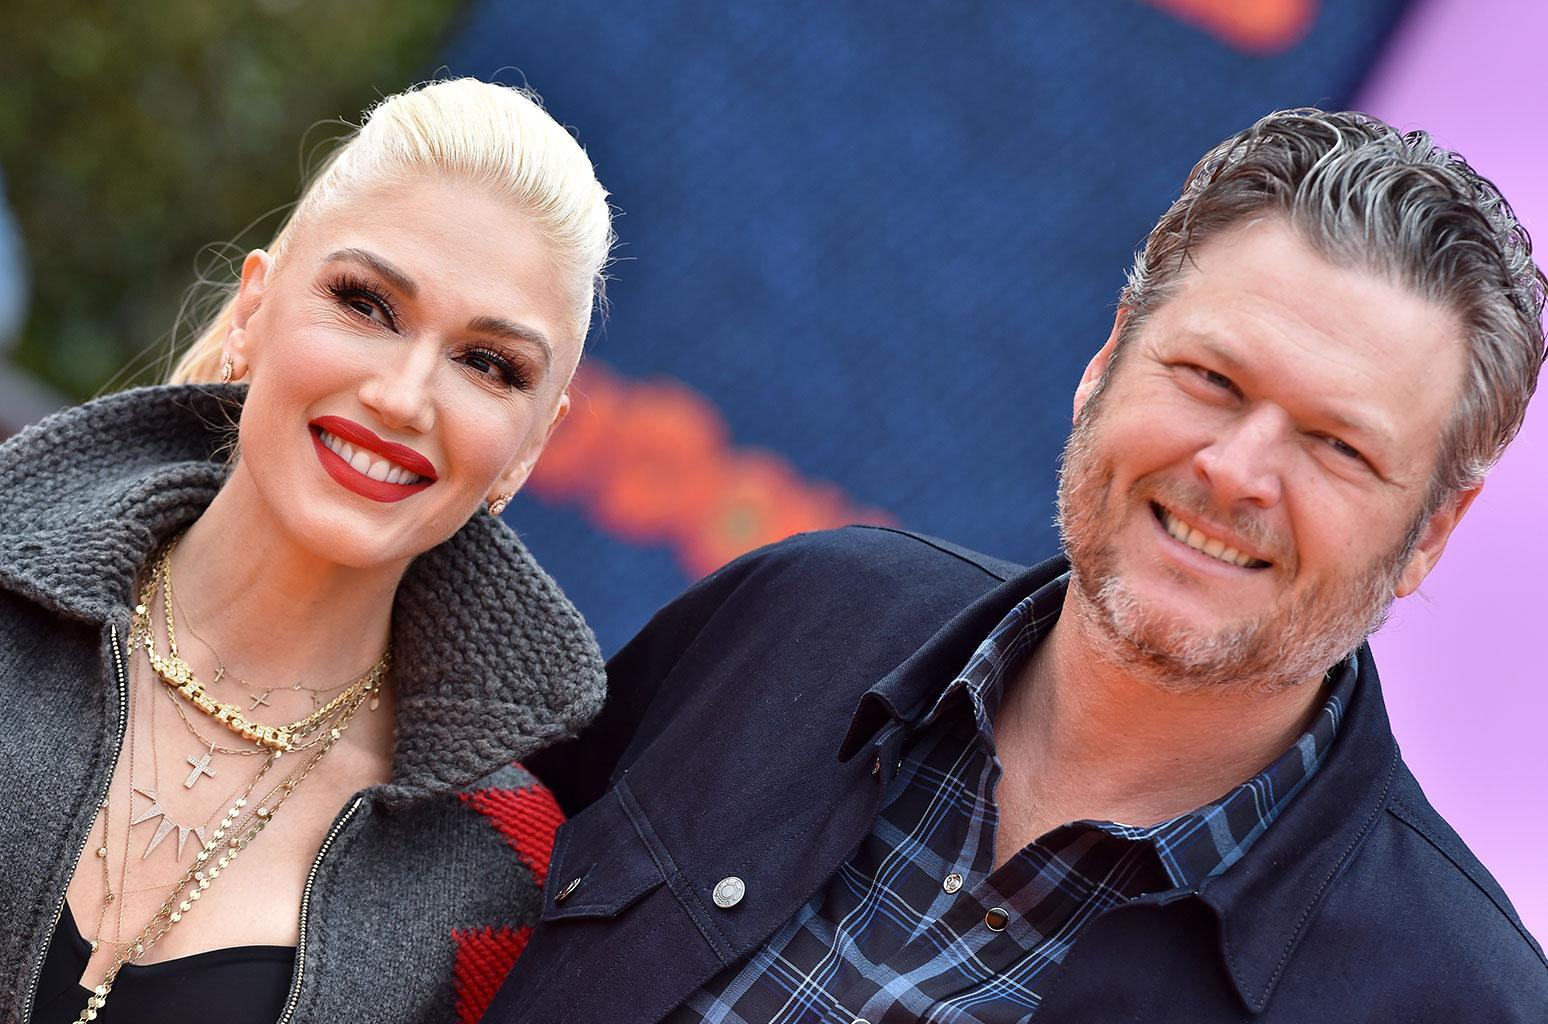 Blake Shelton Posts Video About His Experience 'Dating A Co-Worker' And Gwen Stefani Is VERY Upset - 'How Dare You!'